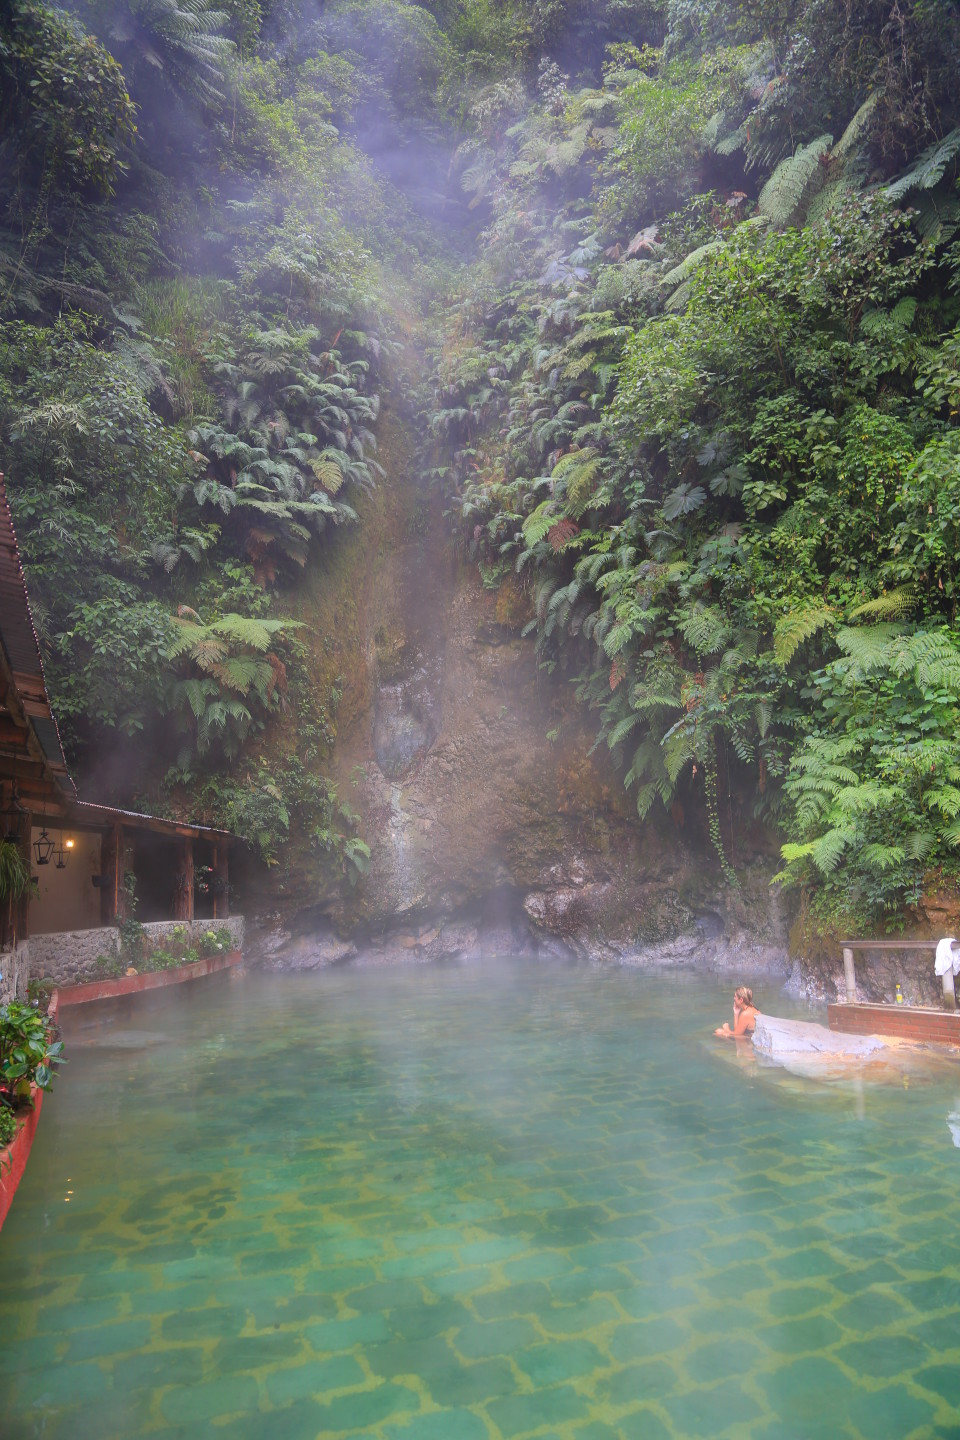 The closer you get to the waterfall, the hotter it gets.